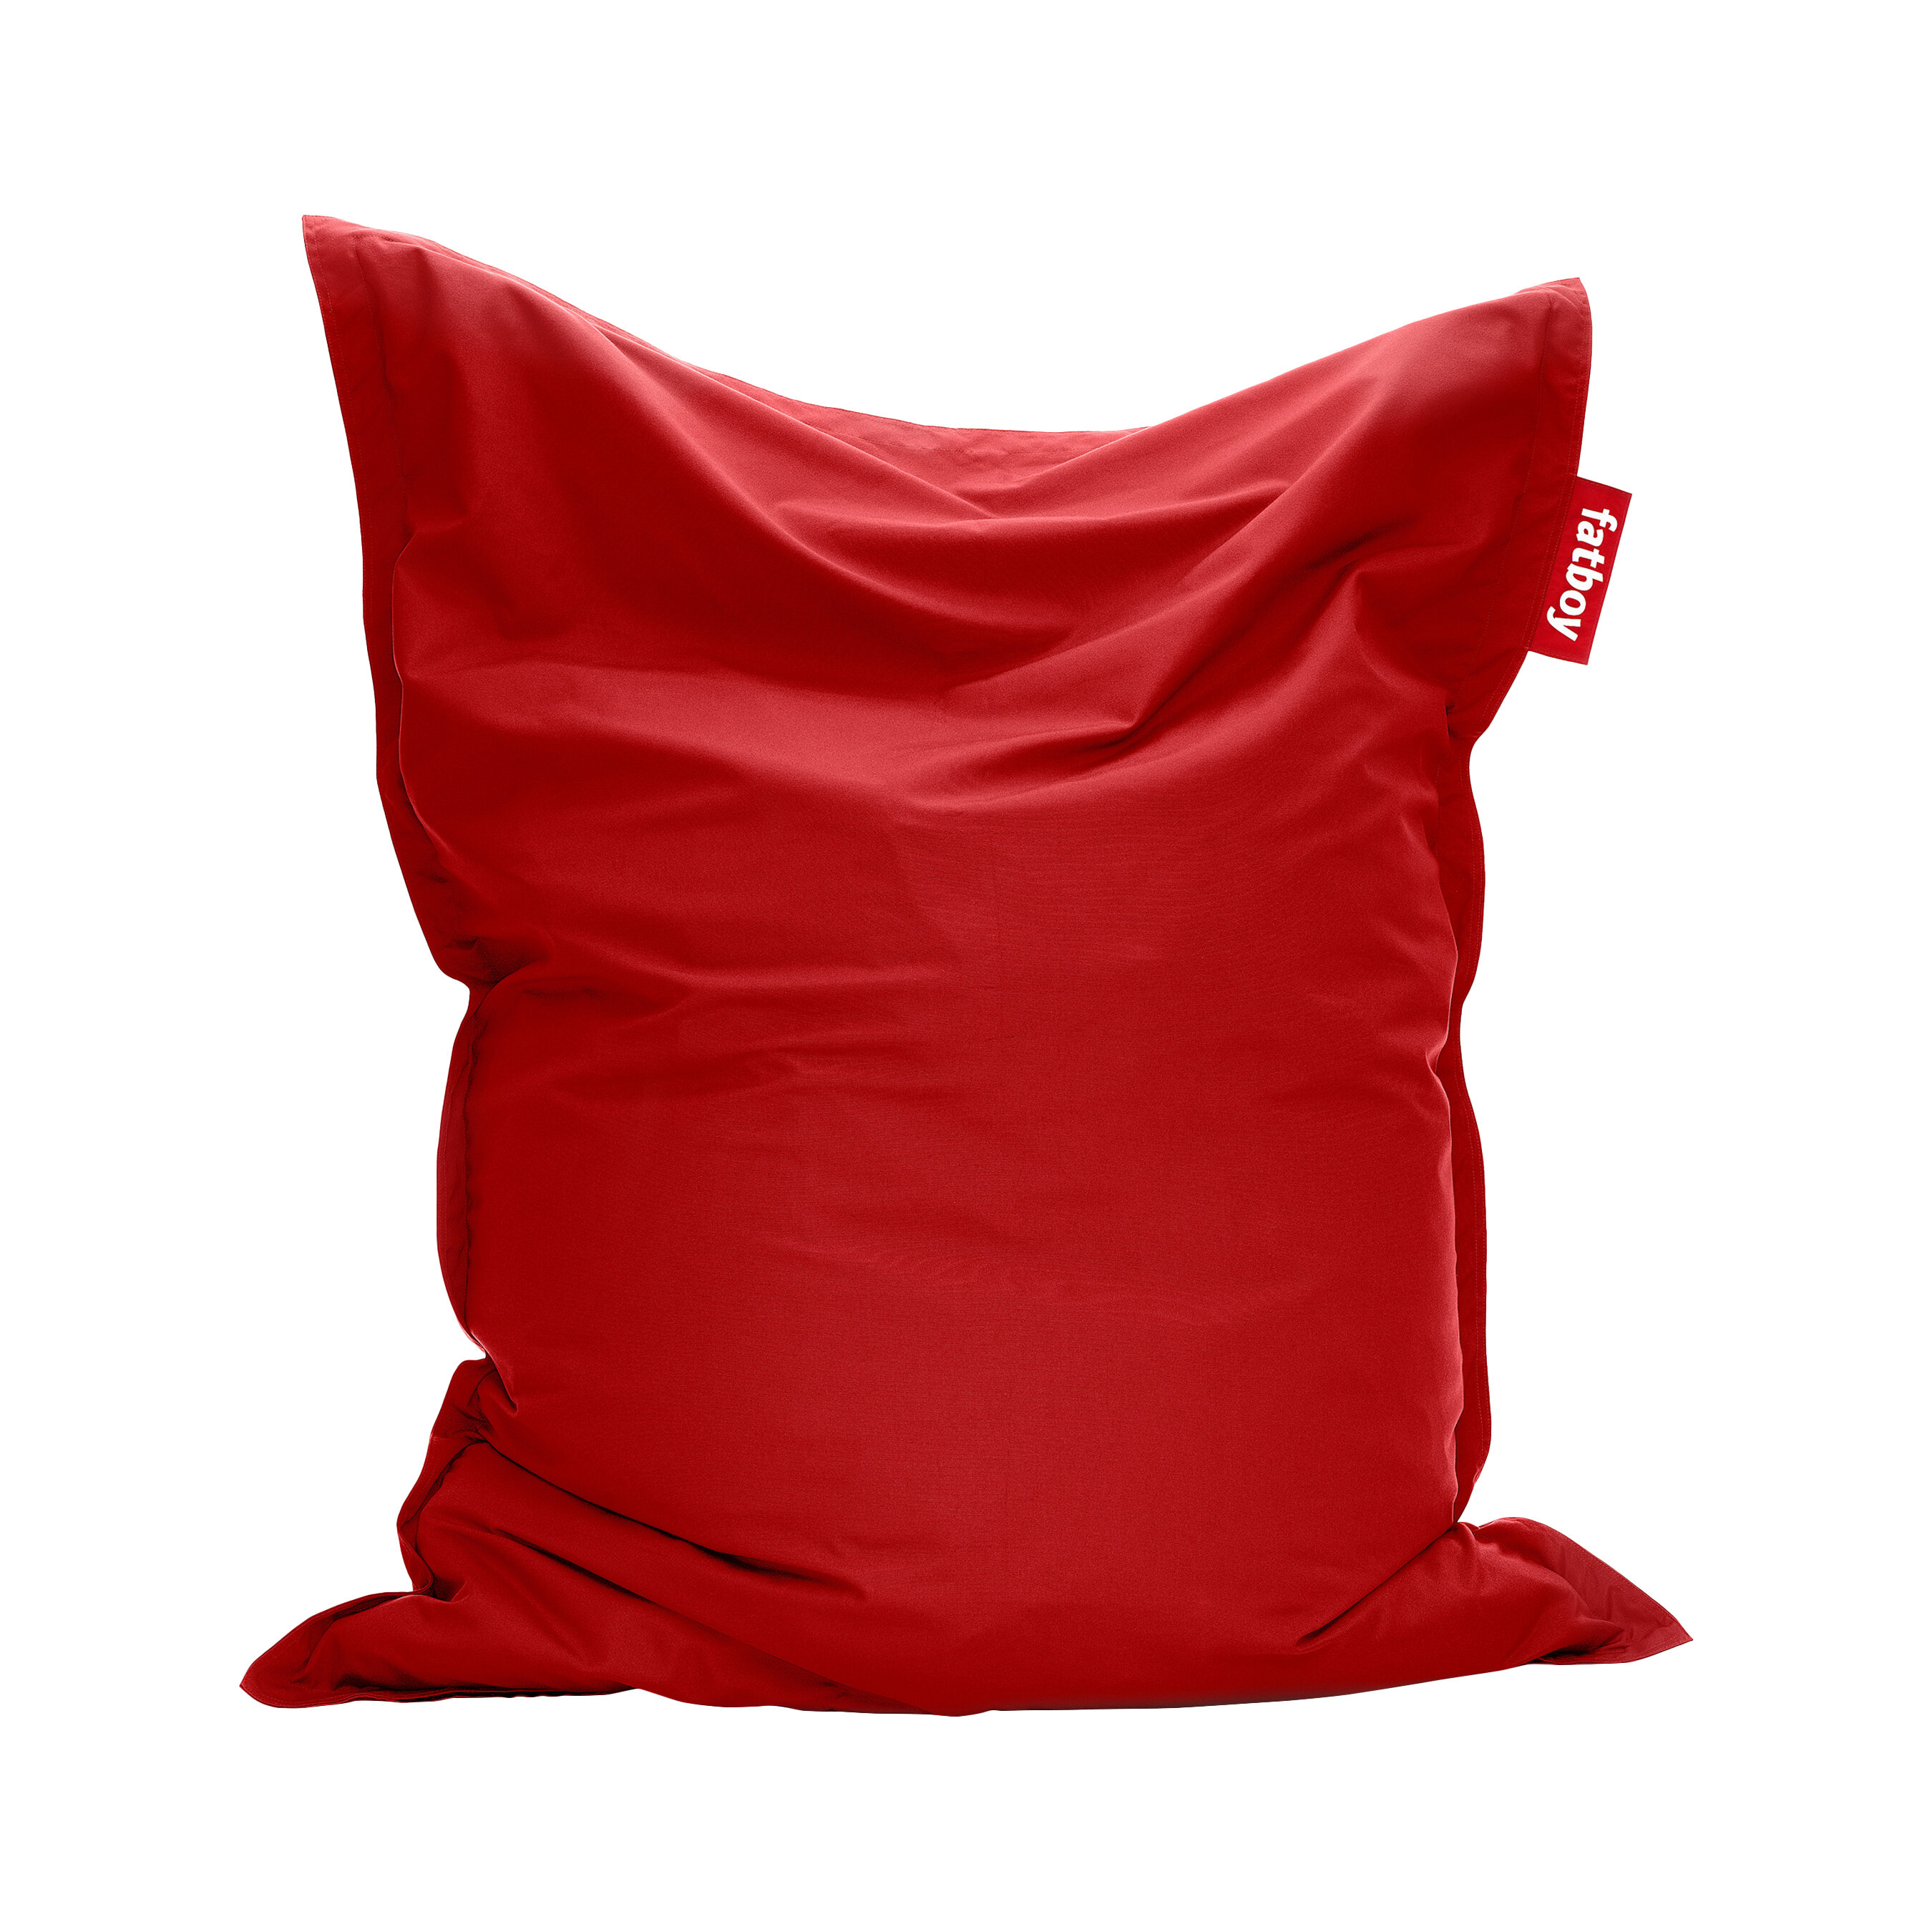 hammock and fabric seat pole iron pillows stand design fatboy outside net back cover cushions armrest modern mosquito waterproof chain red head furnitures hook idea throw canopy foot with black